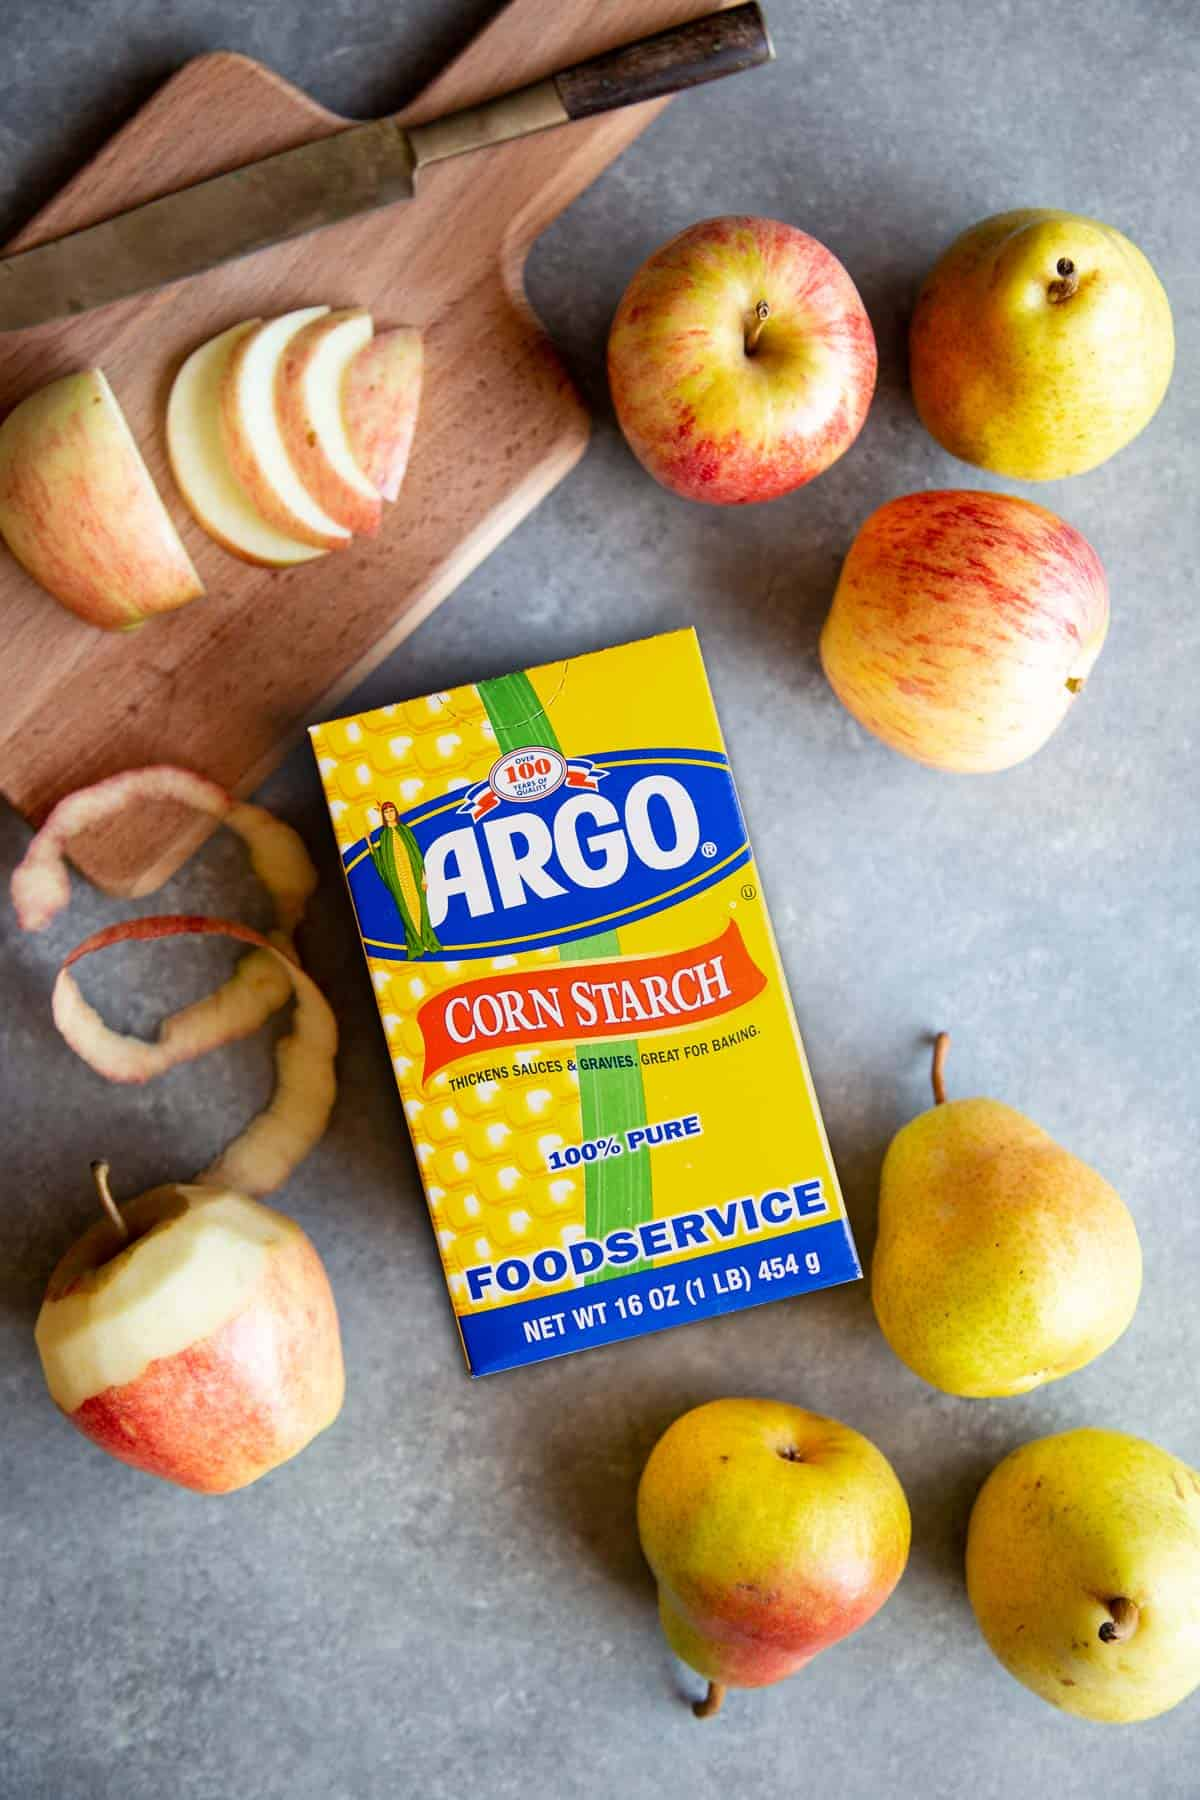 A box of Argo cornstarch on a board with apples and pears